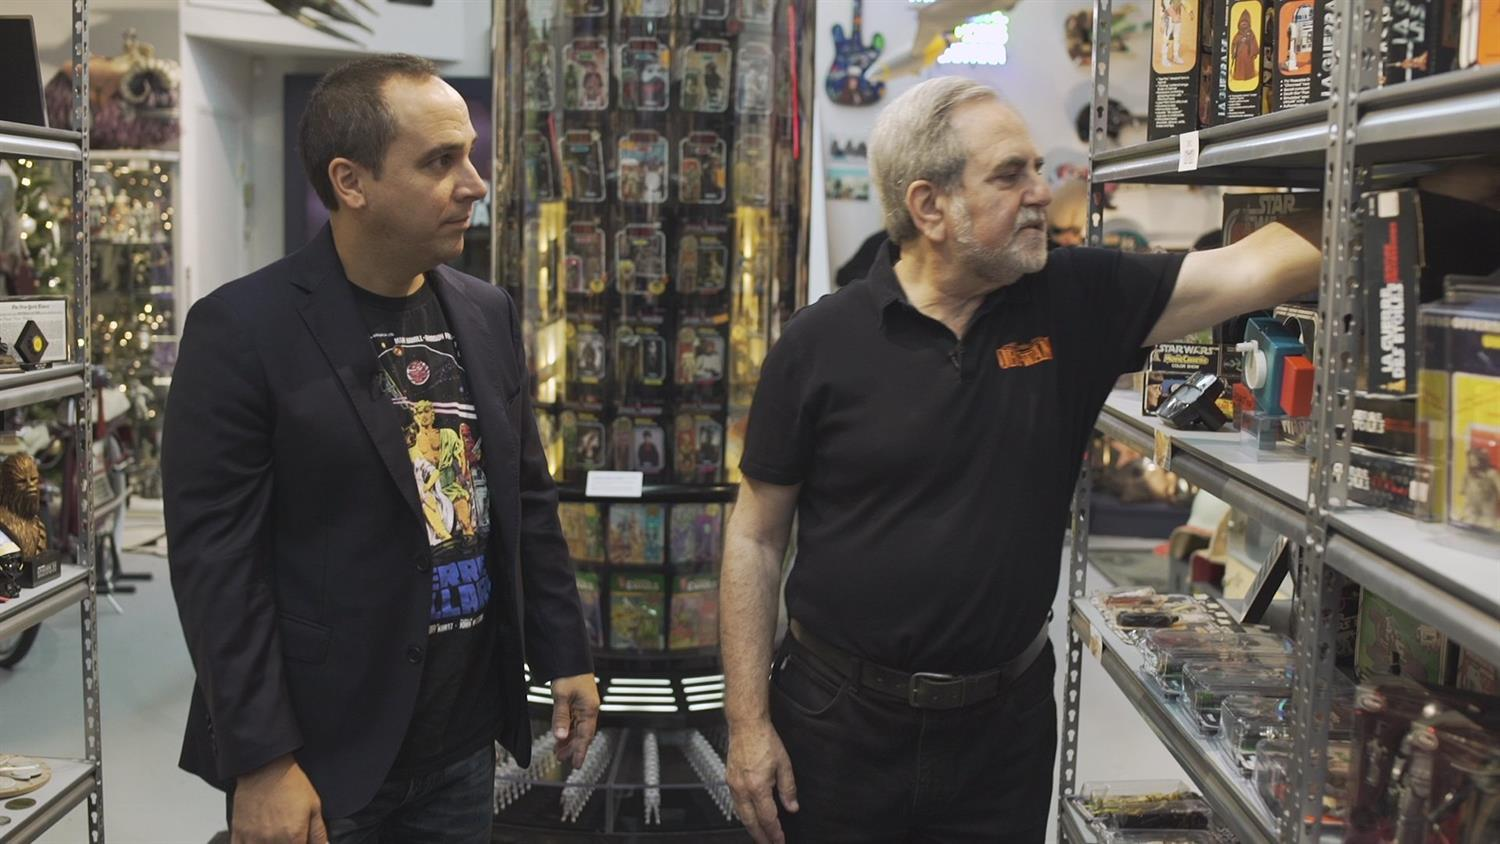 World's Largest Star Wars Collection, Rancho Obi-Wan Exclusive Tour Part 2